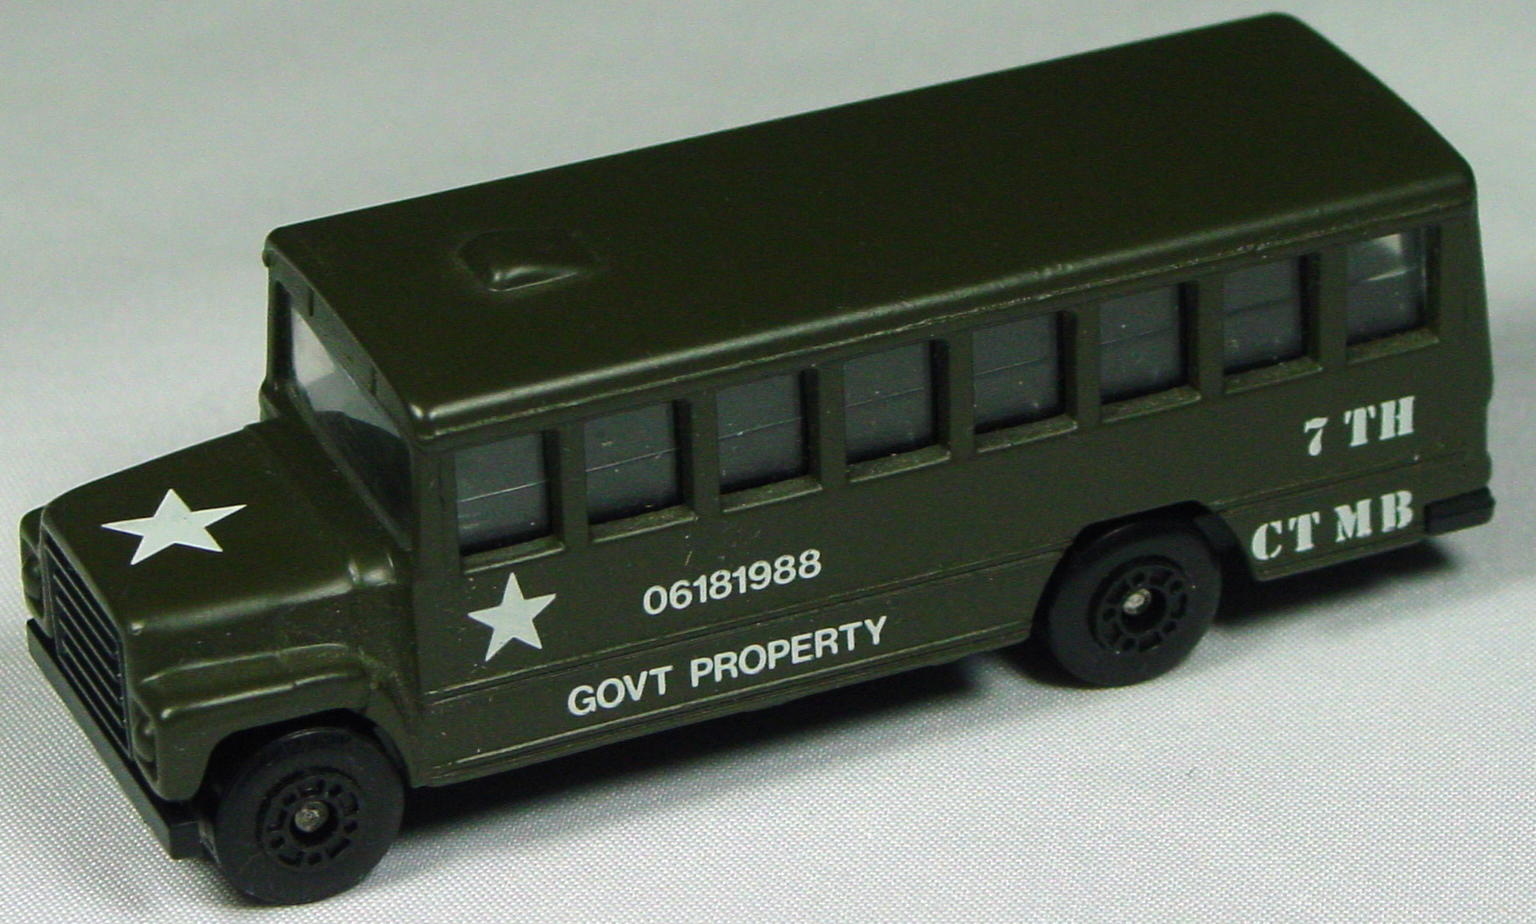 Offshore SuperFast 47 E 3 - School Bus olive made in China